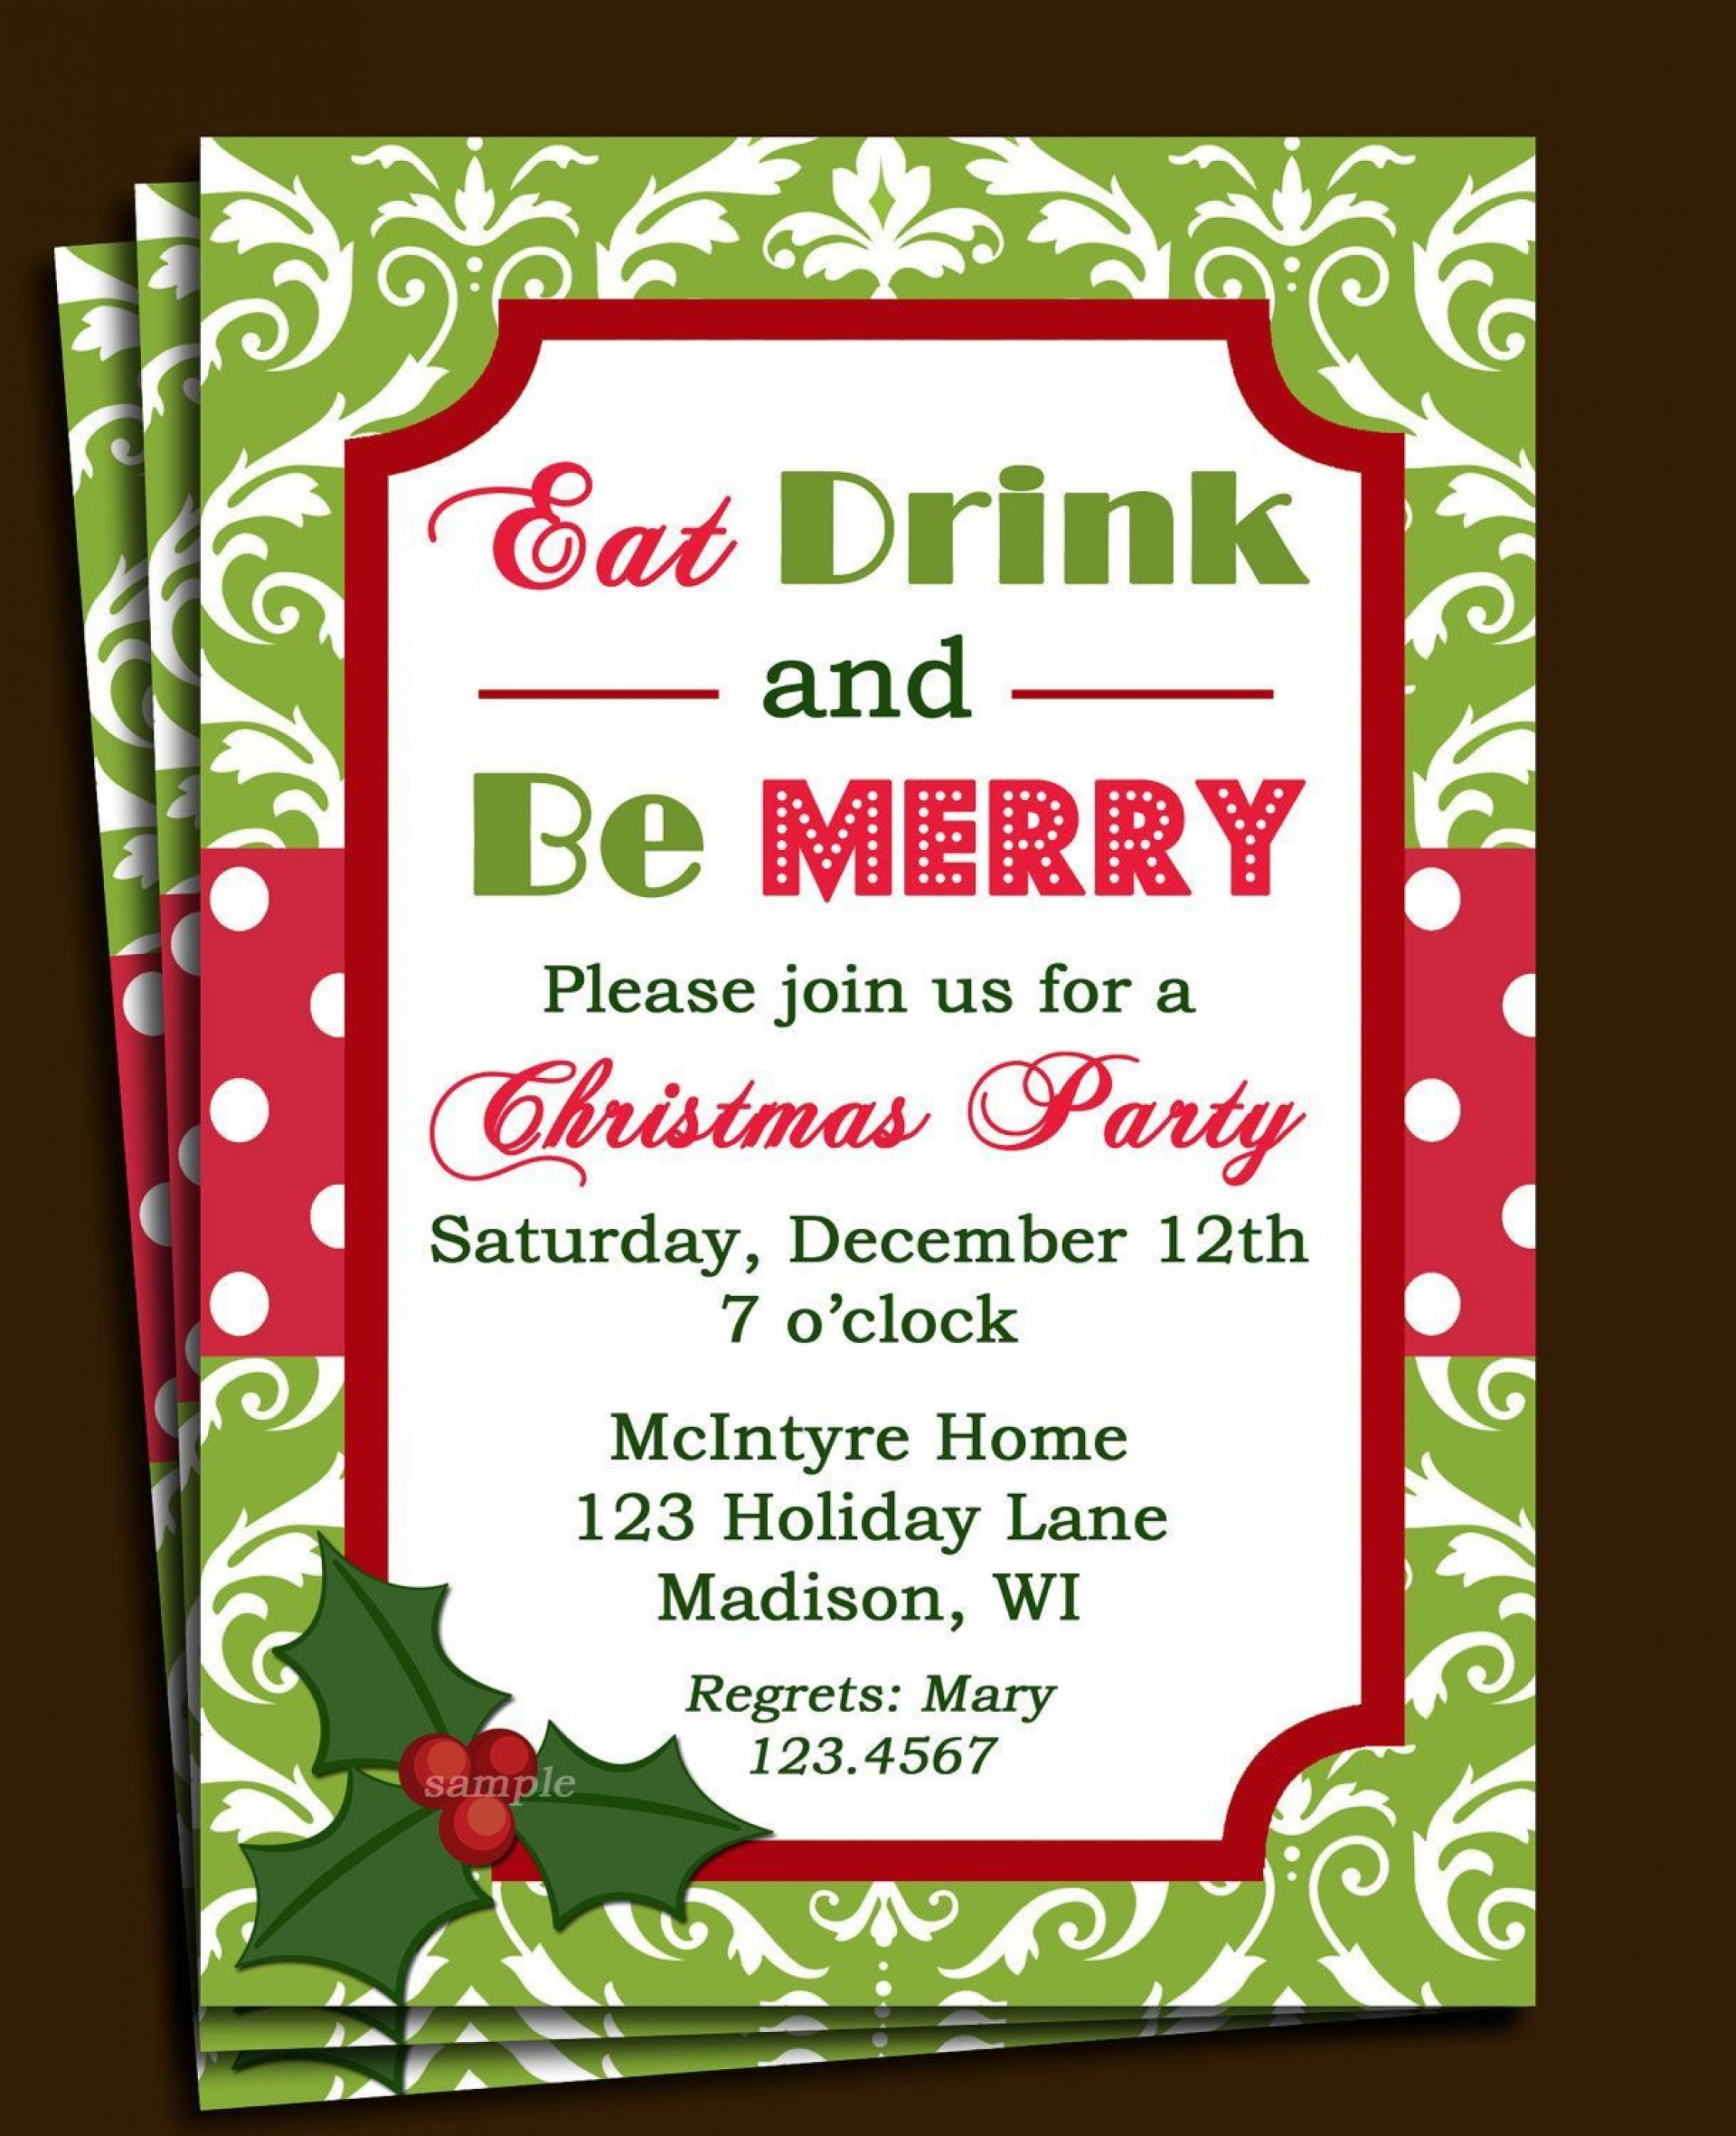 007 Breathtaking Free Holiday Party Invitation Template For Word Highest Clarity 1920